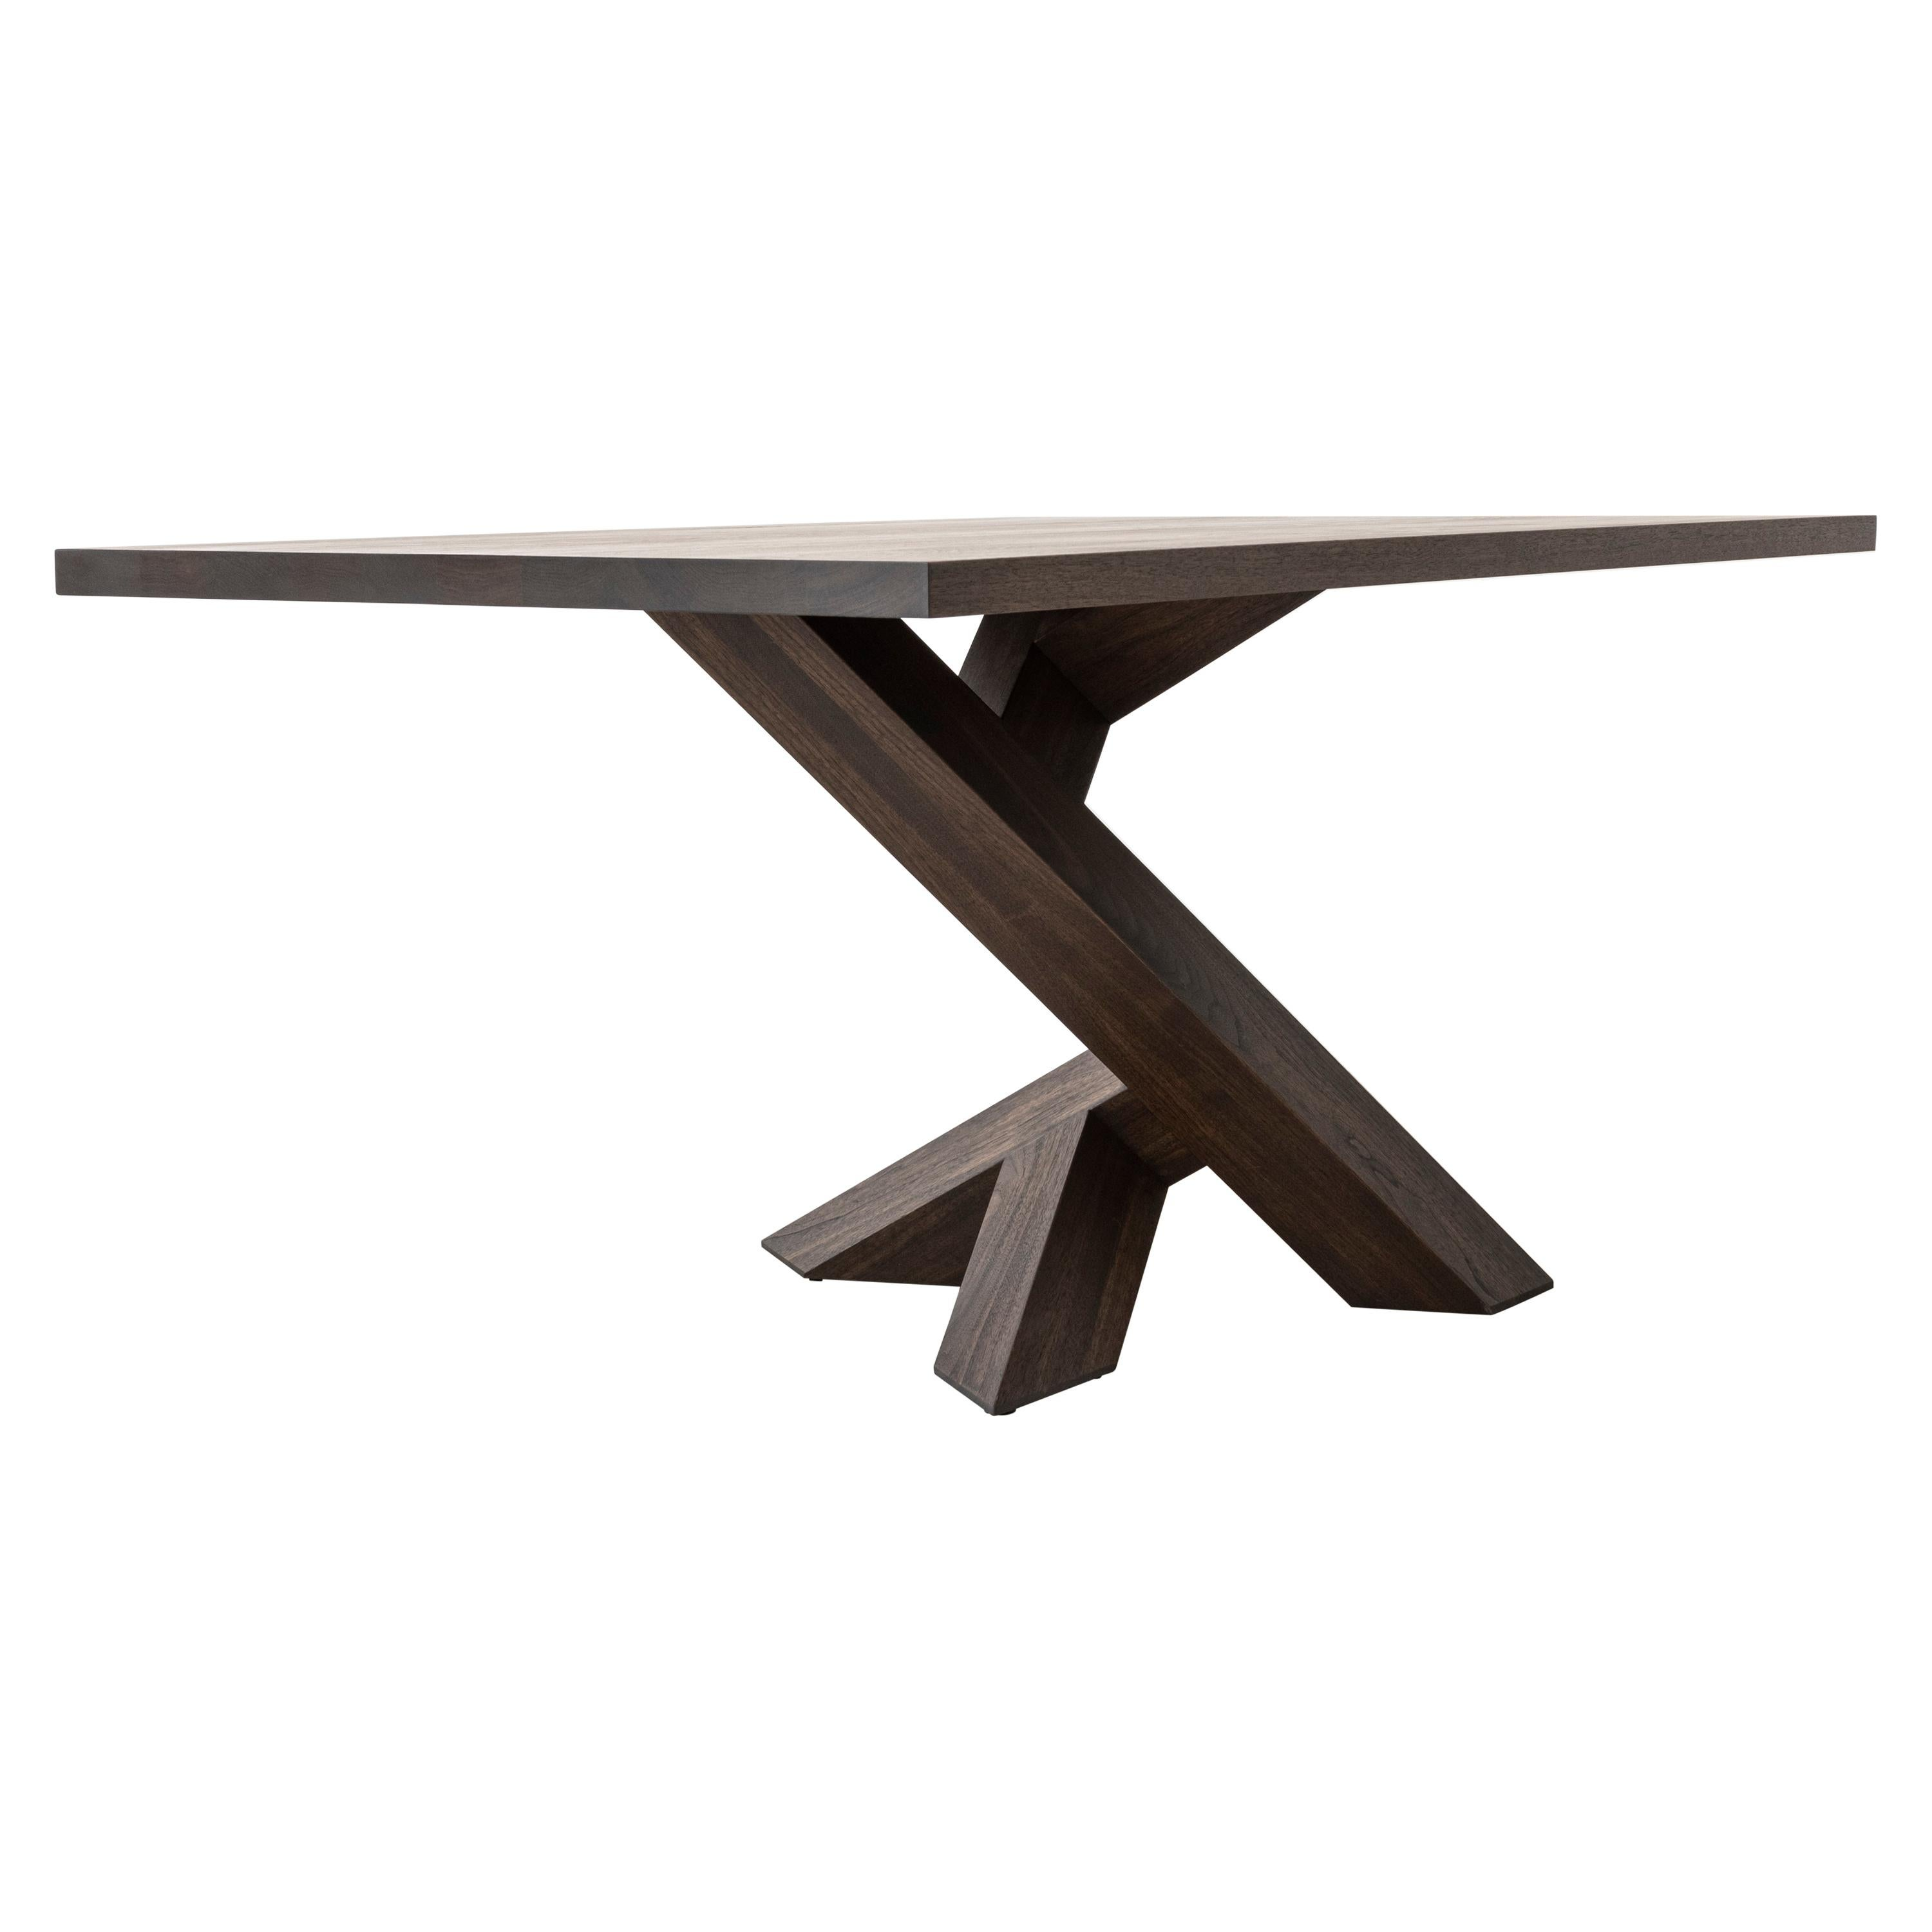 Iconoclast Solid Wood Pedestal Dining Table by Izm Design